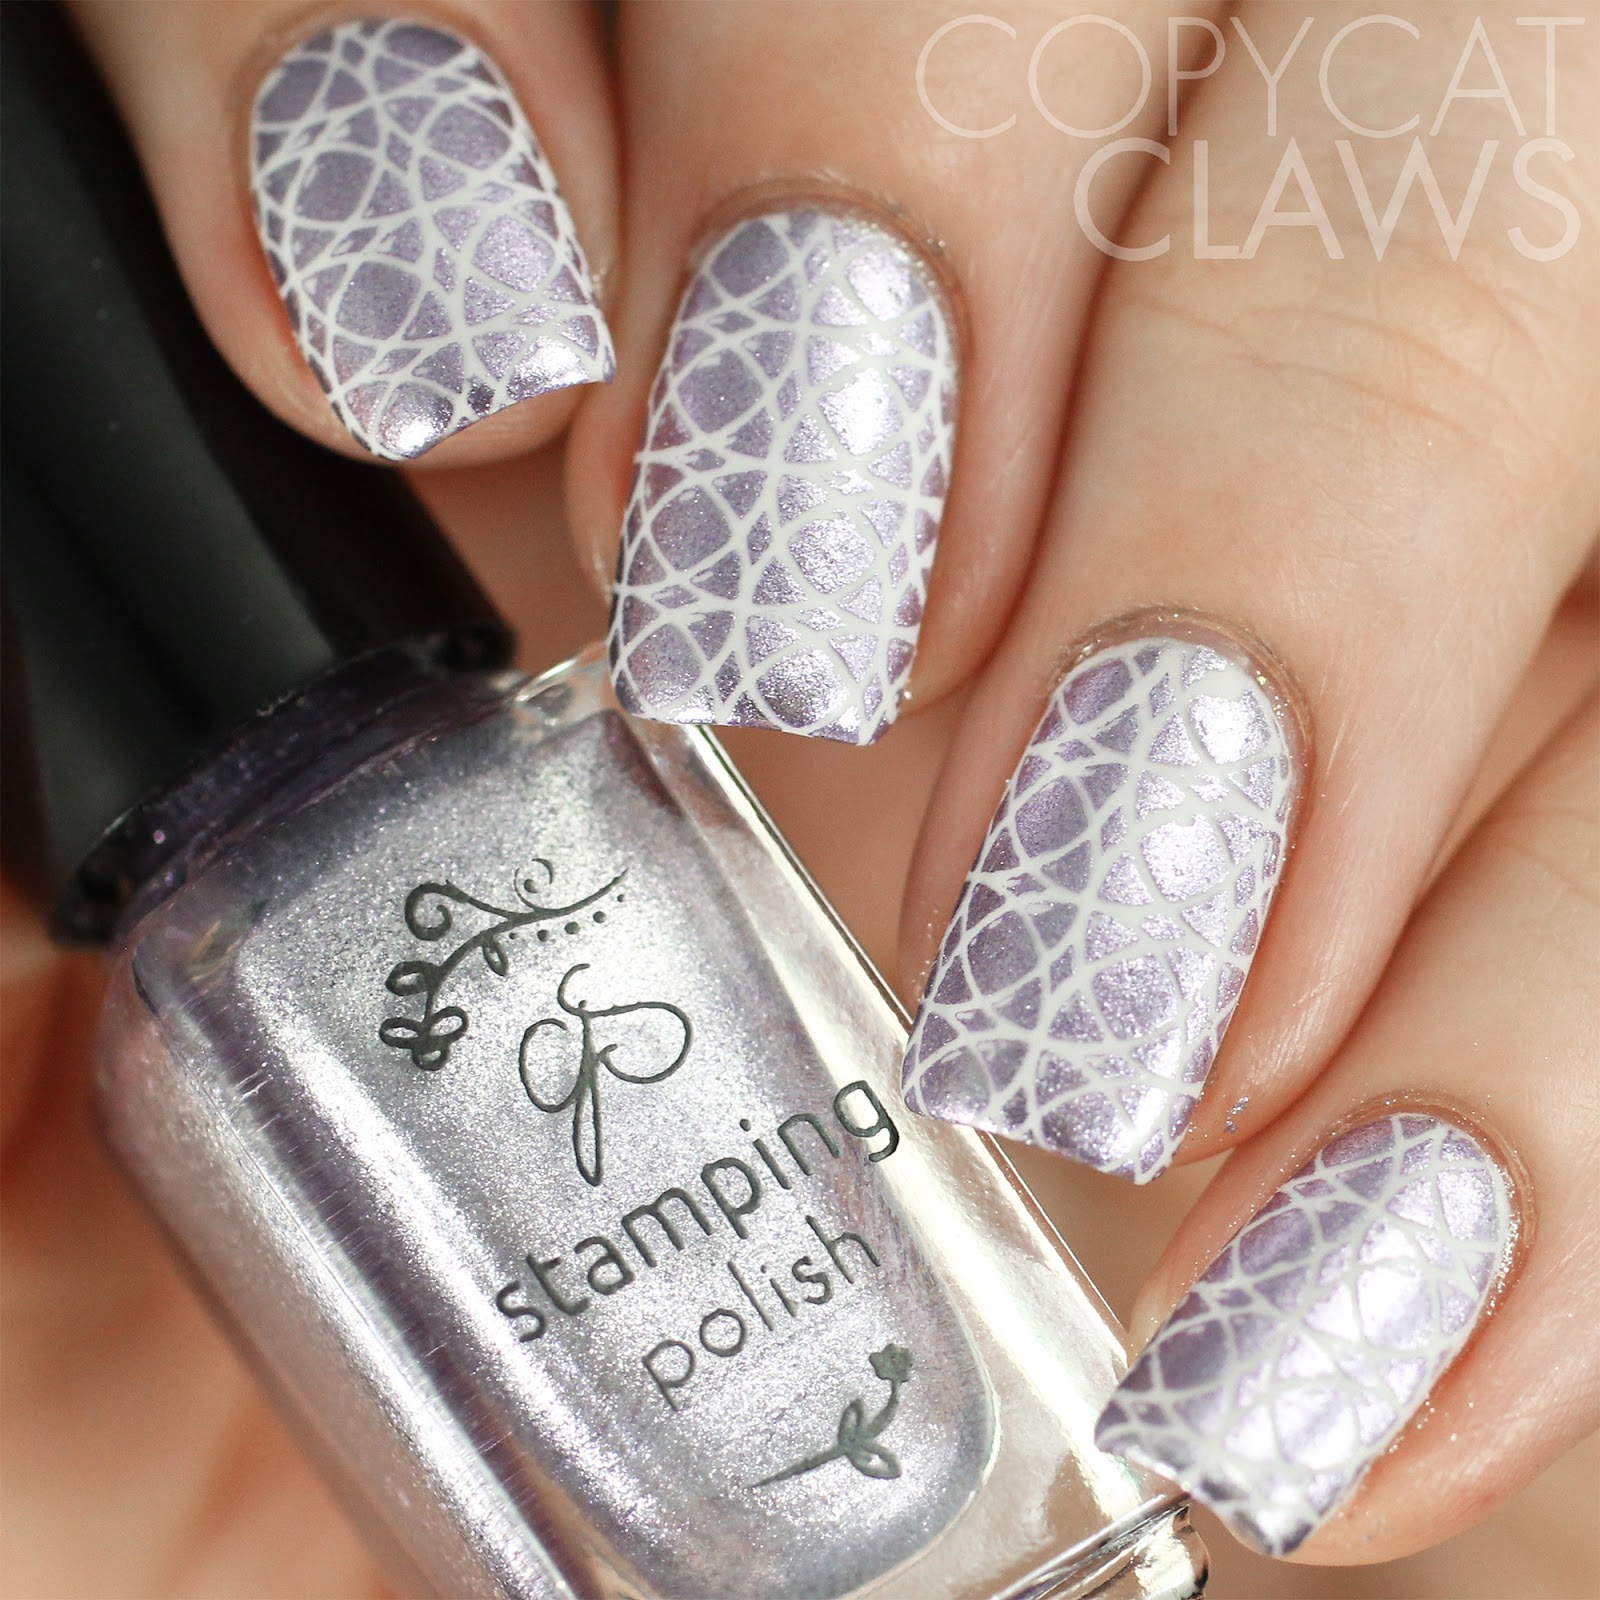 Copycat Claws: Clear Jelly Stamper Big Bling Boxed Kit and Stamping ...